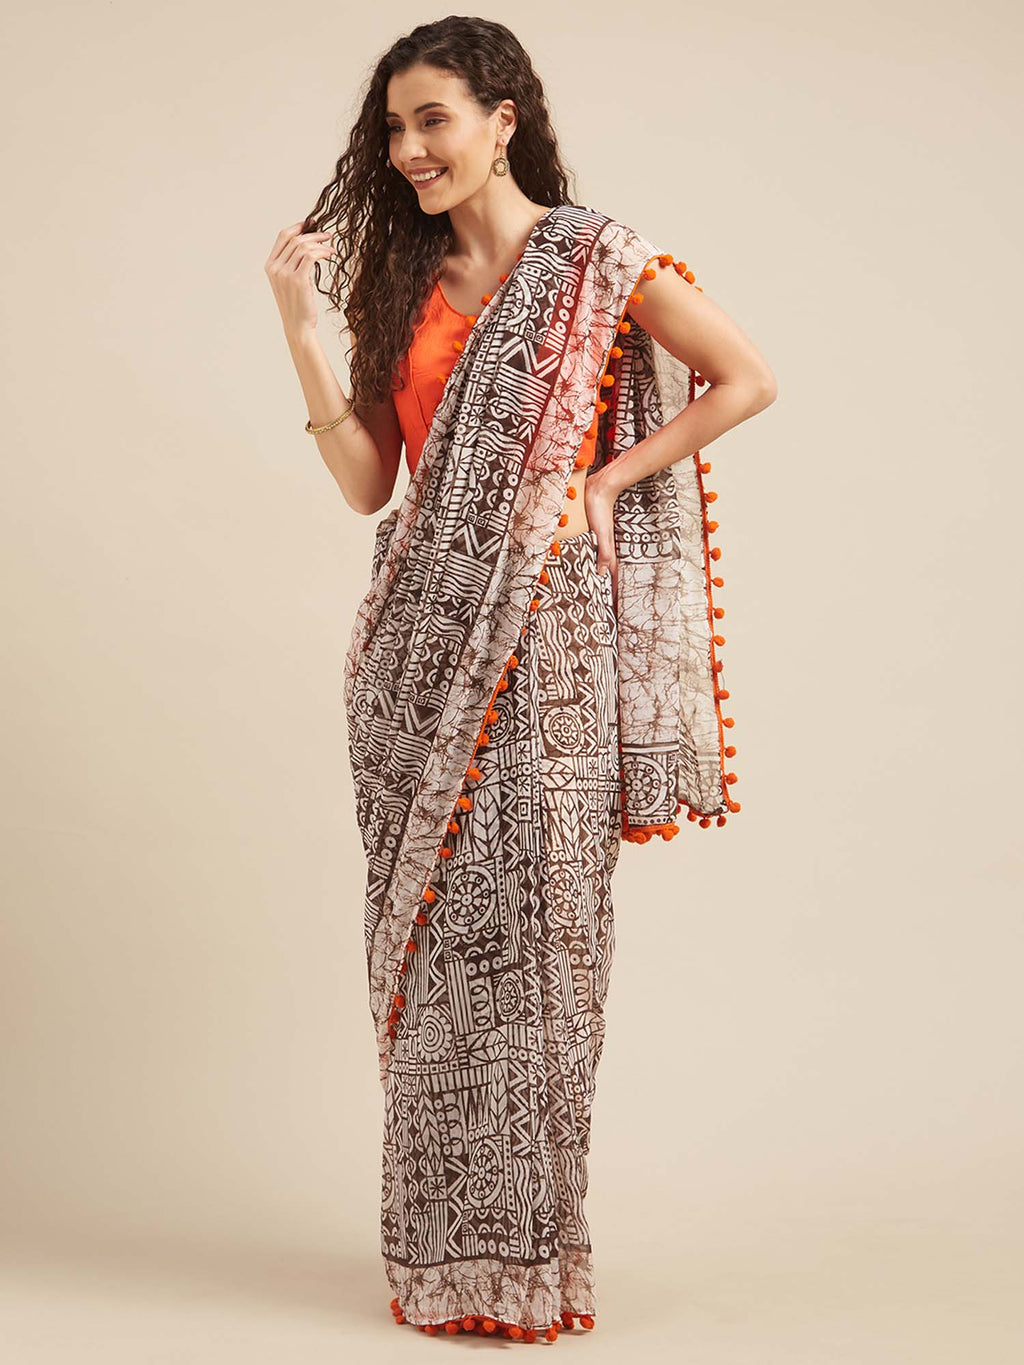 Brown and White Poly Georgette Batik Print Saree With Pom Pom Lace - Riviera Closet